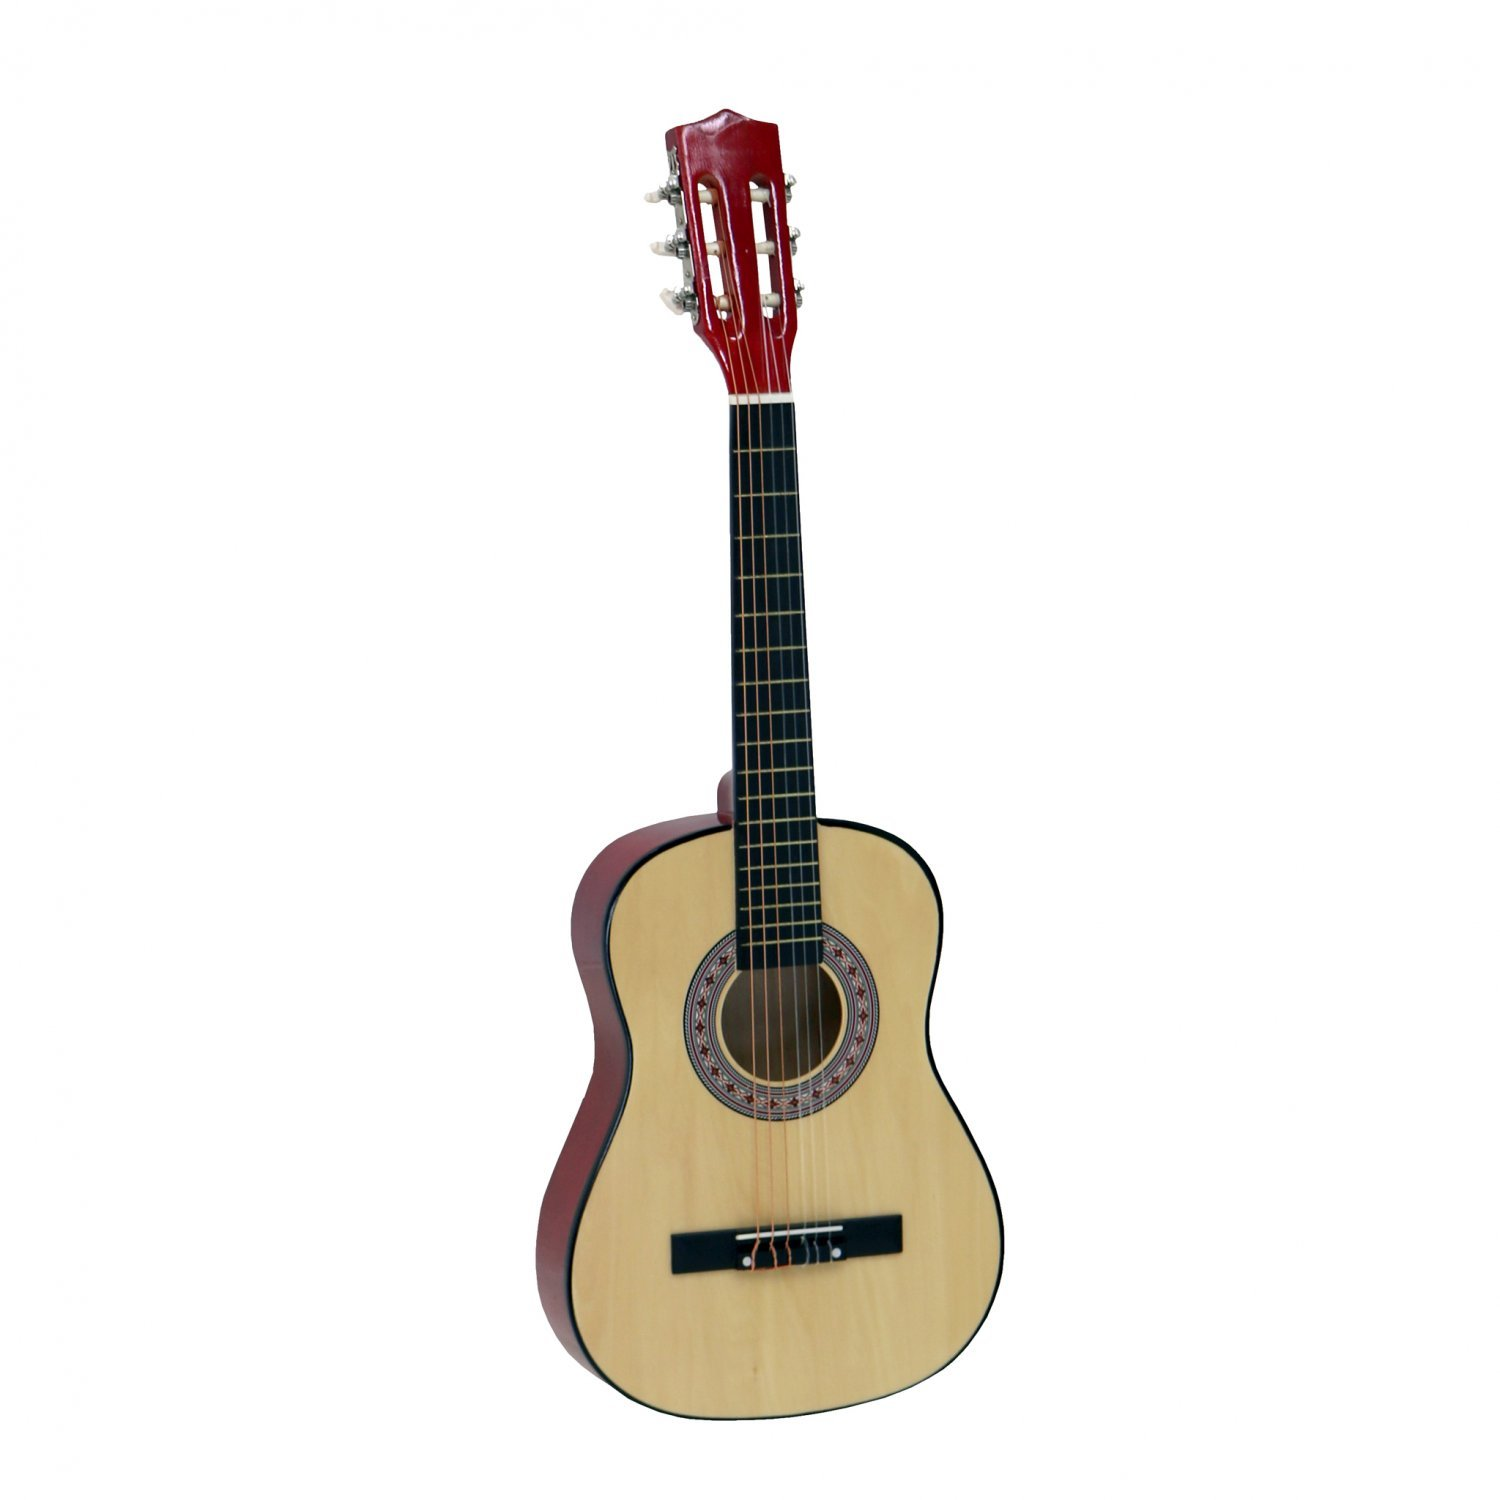 34 half size 1 2 6 string classical acoustic guitar oypla stocking the very best. Black Bedroom Furniture Sets. Home Design Ideas